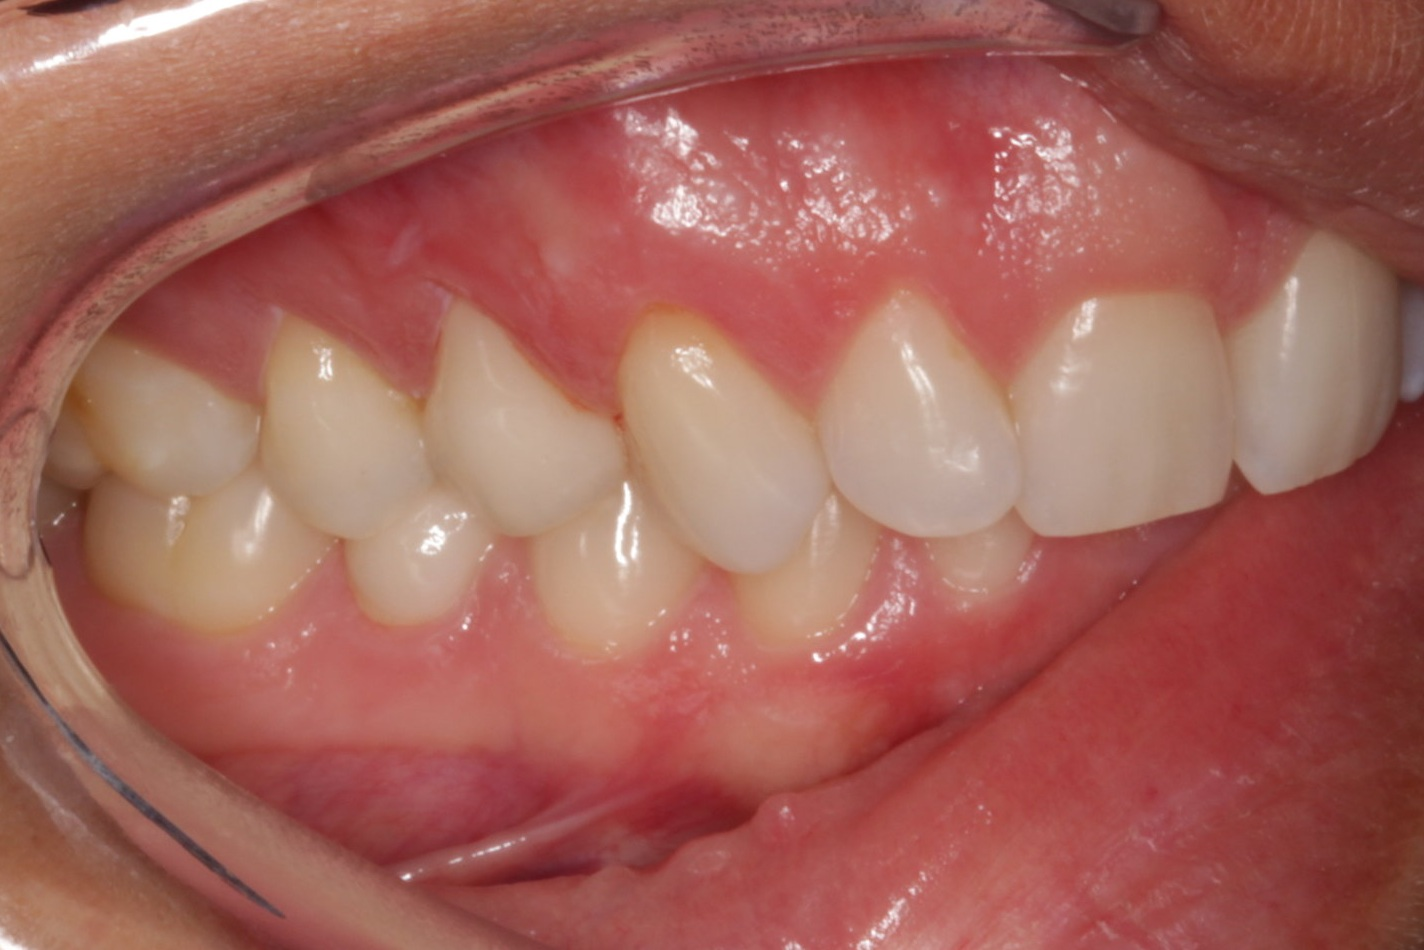 Can you guess which tooth has the crown that Dr. Sunayna did on this patient?